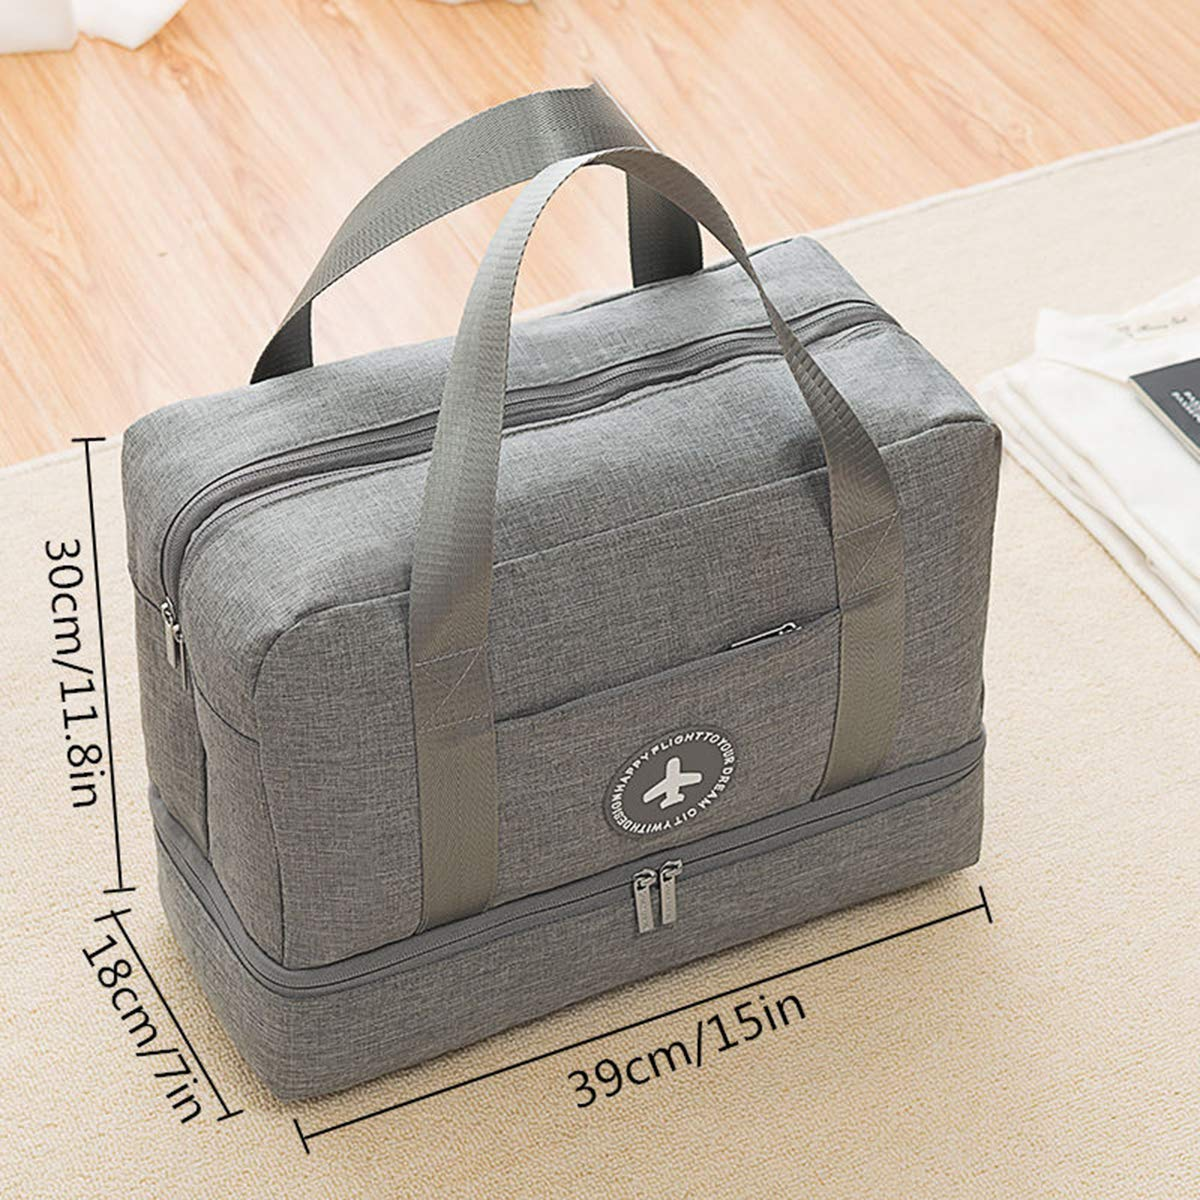 Vaincre Swim Bag, Dry Wet Area & Shoe Compartment Separated Waterproof Duffle Bag for Gym, Pool, Beach by Vaincre (Image #2)